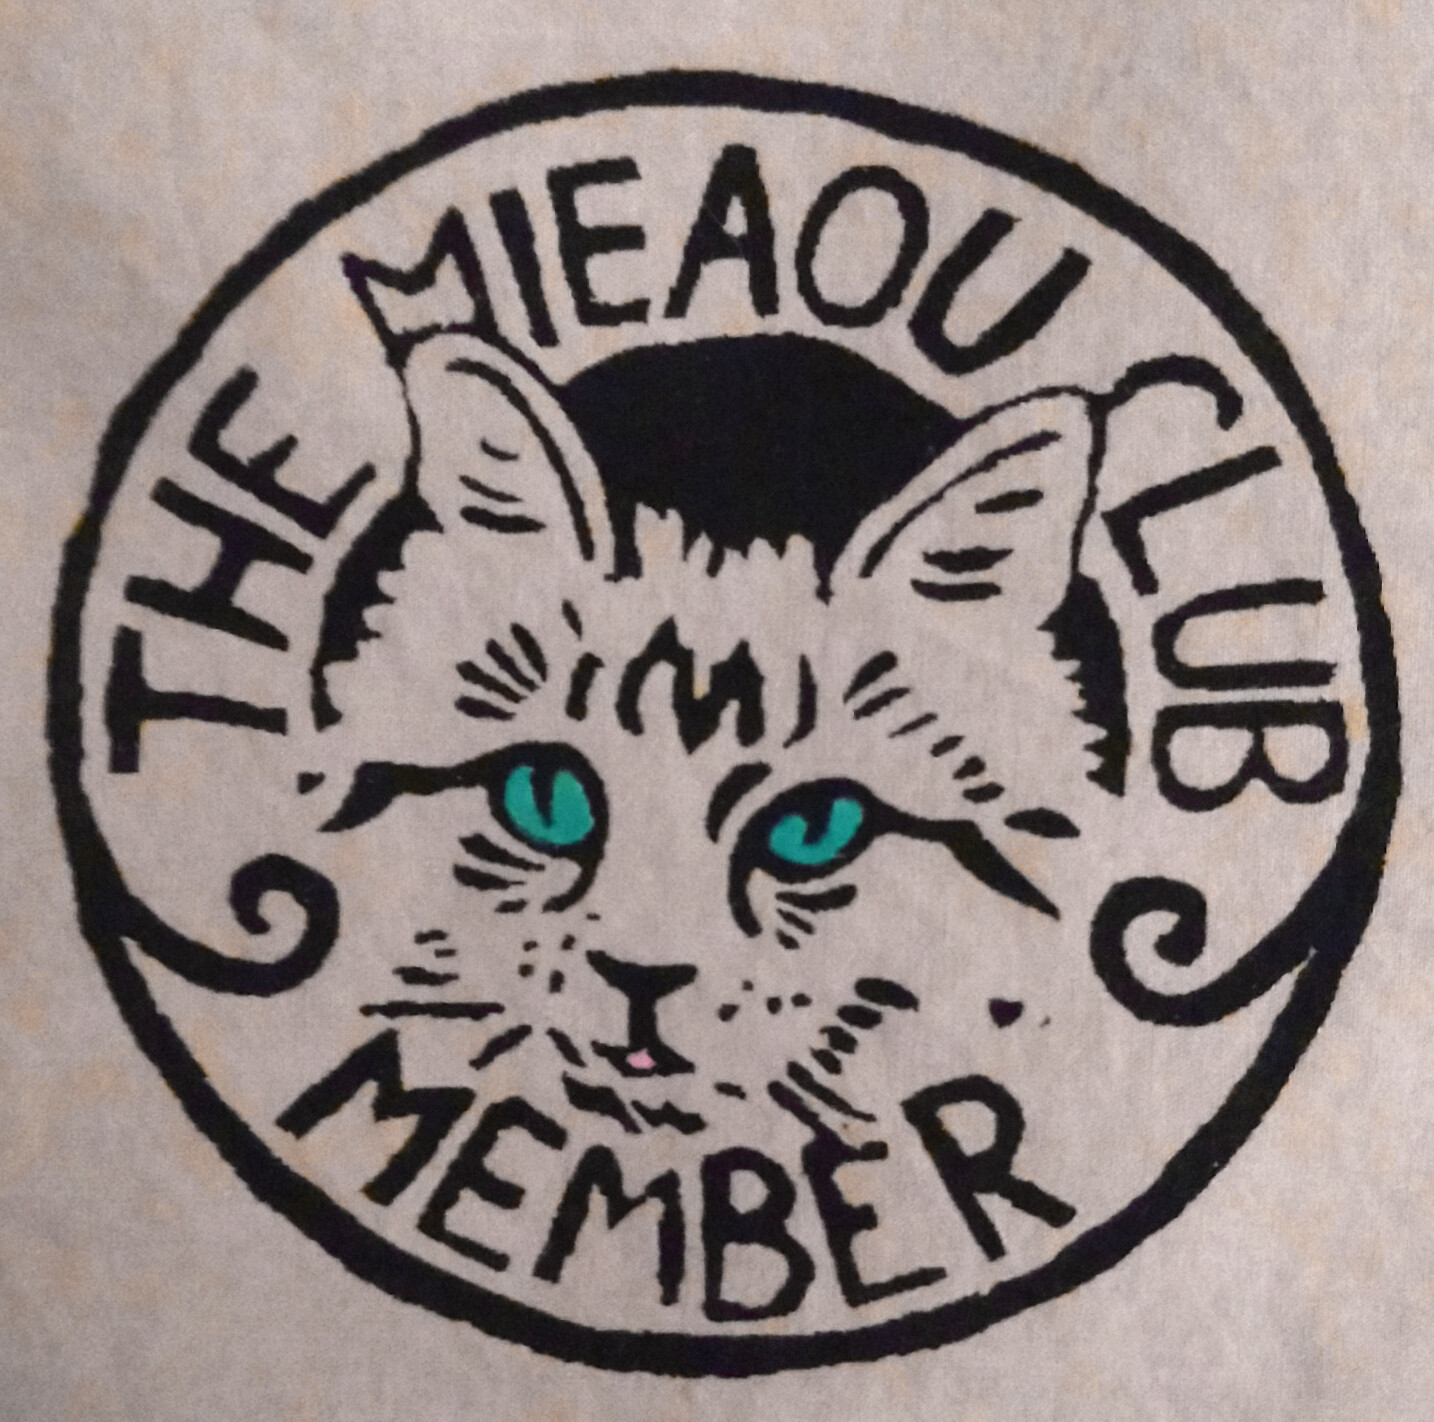 Mieaou Club Patch (aka Meow Club)